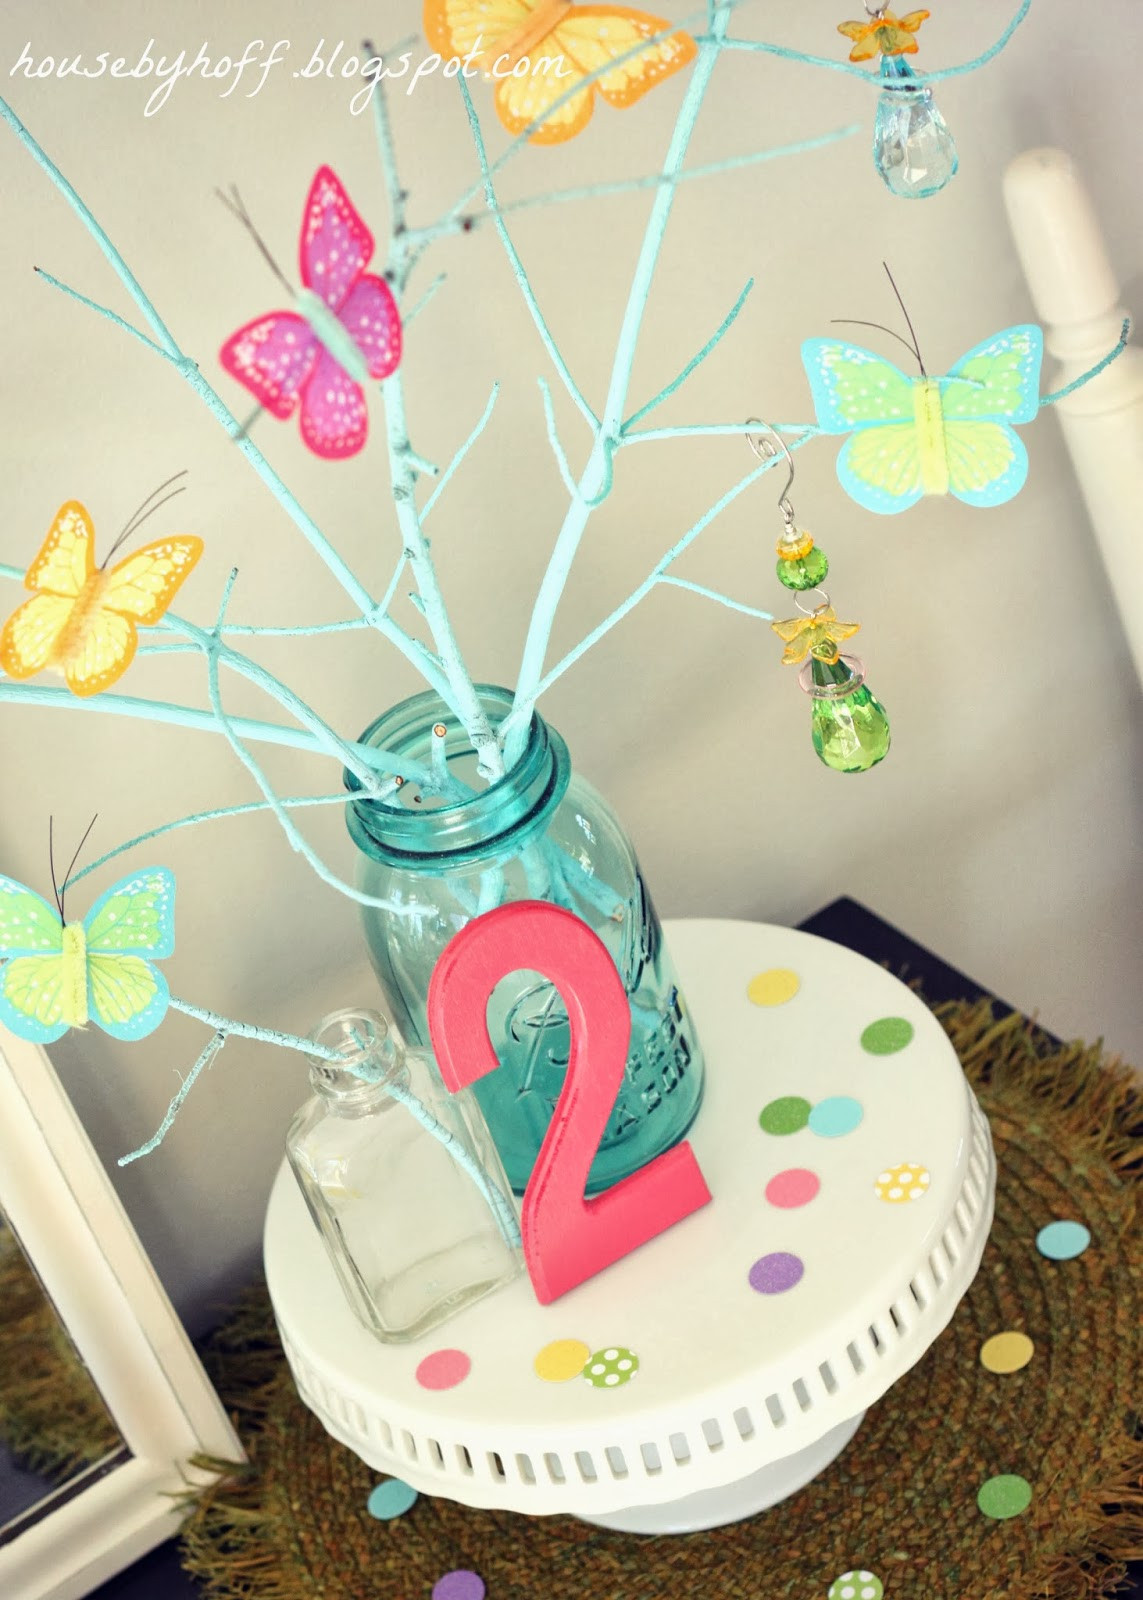 Best ideas about Butterfly Birthday Decor . Save or Pin A Butterfly Picnic Birthday Party House by Hoff Now.